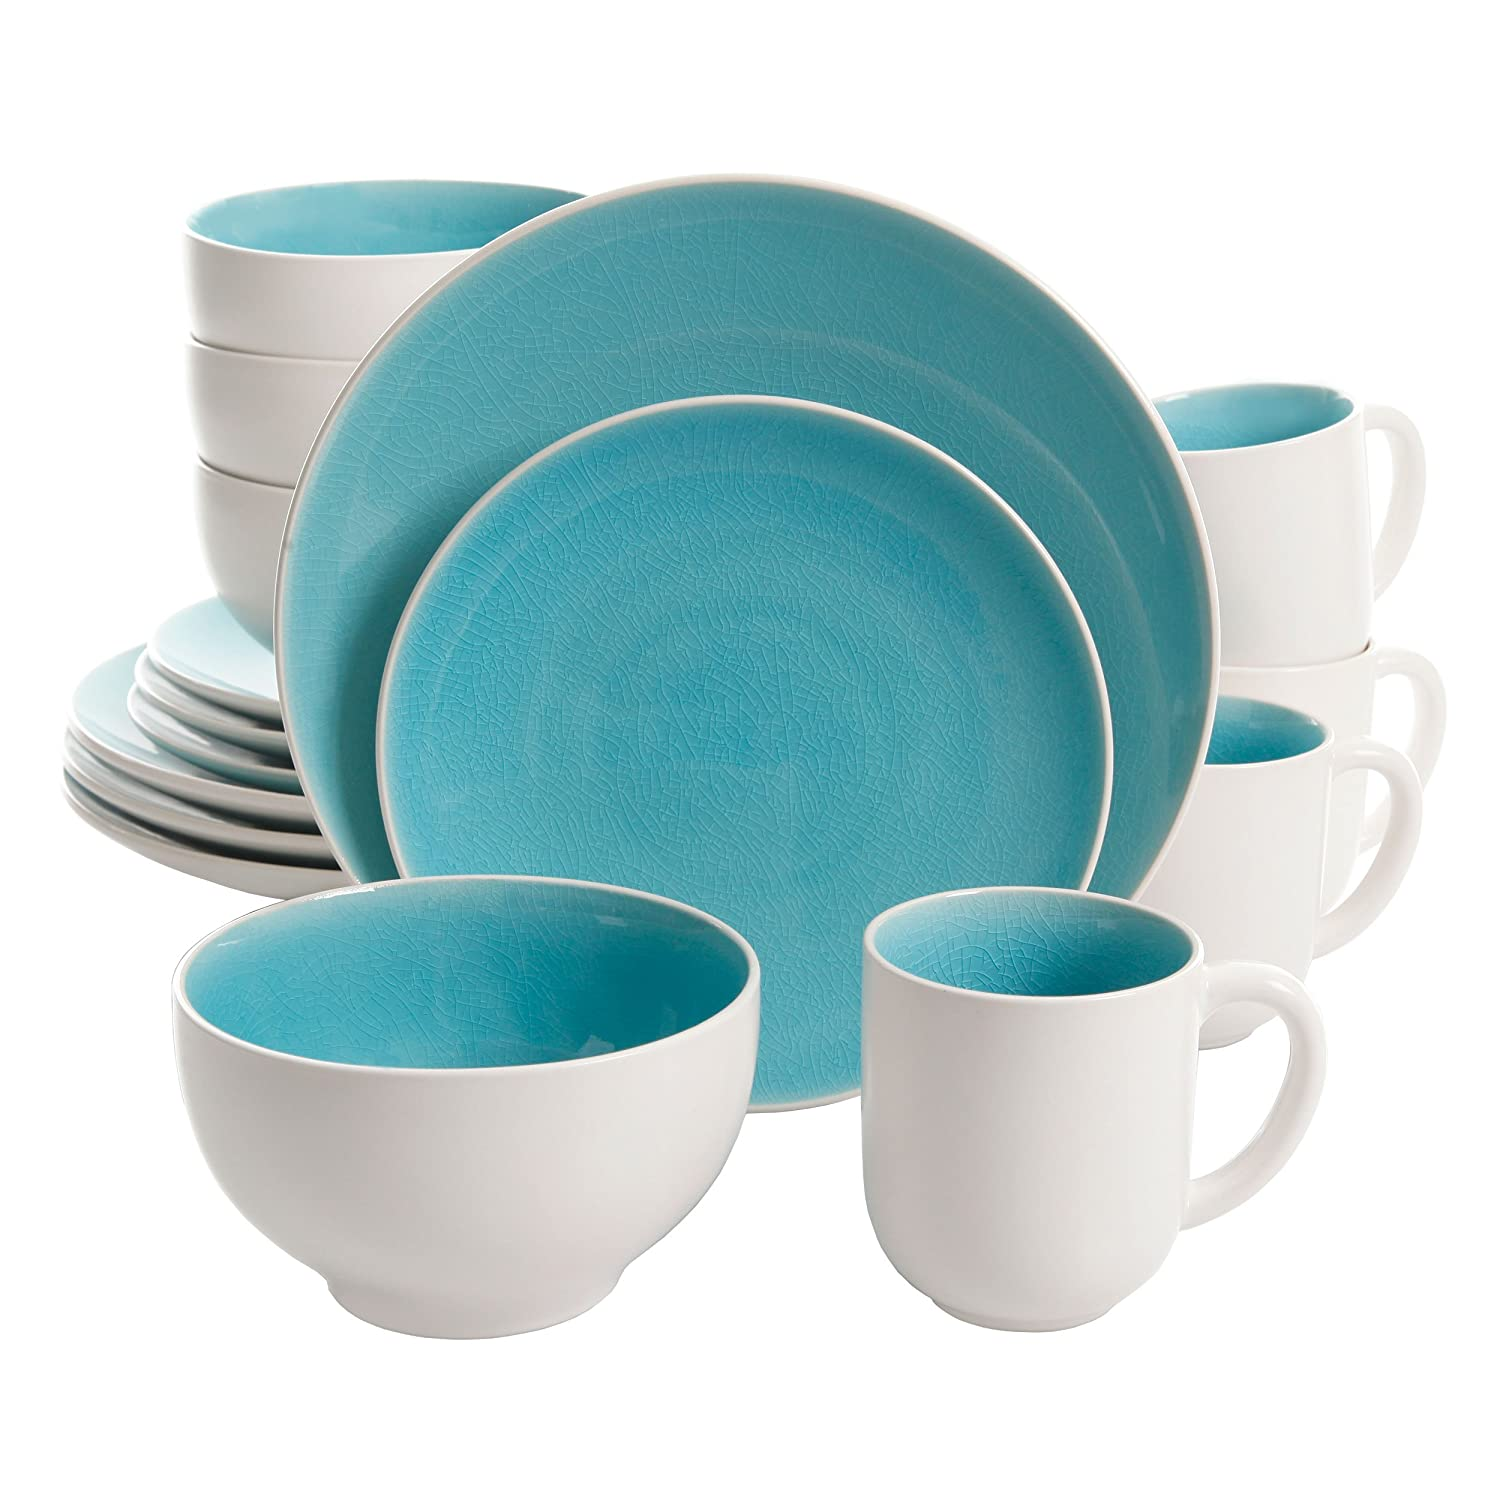 Amazon.com Gibson Elite Serenity 16 Piece Dinnerware Set Turquoise/White Kitchen \u0026 Dining  sc 1 st  Amazon.com : turquoise dinnerware - pezcame.com